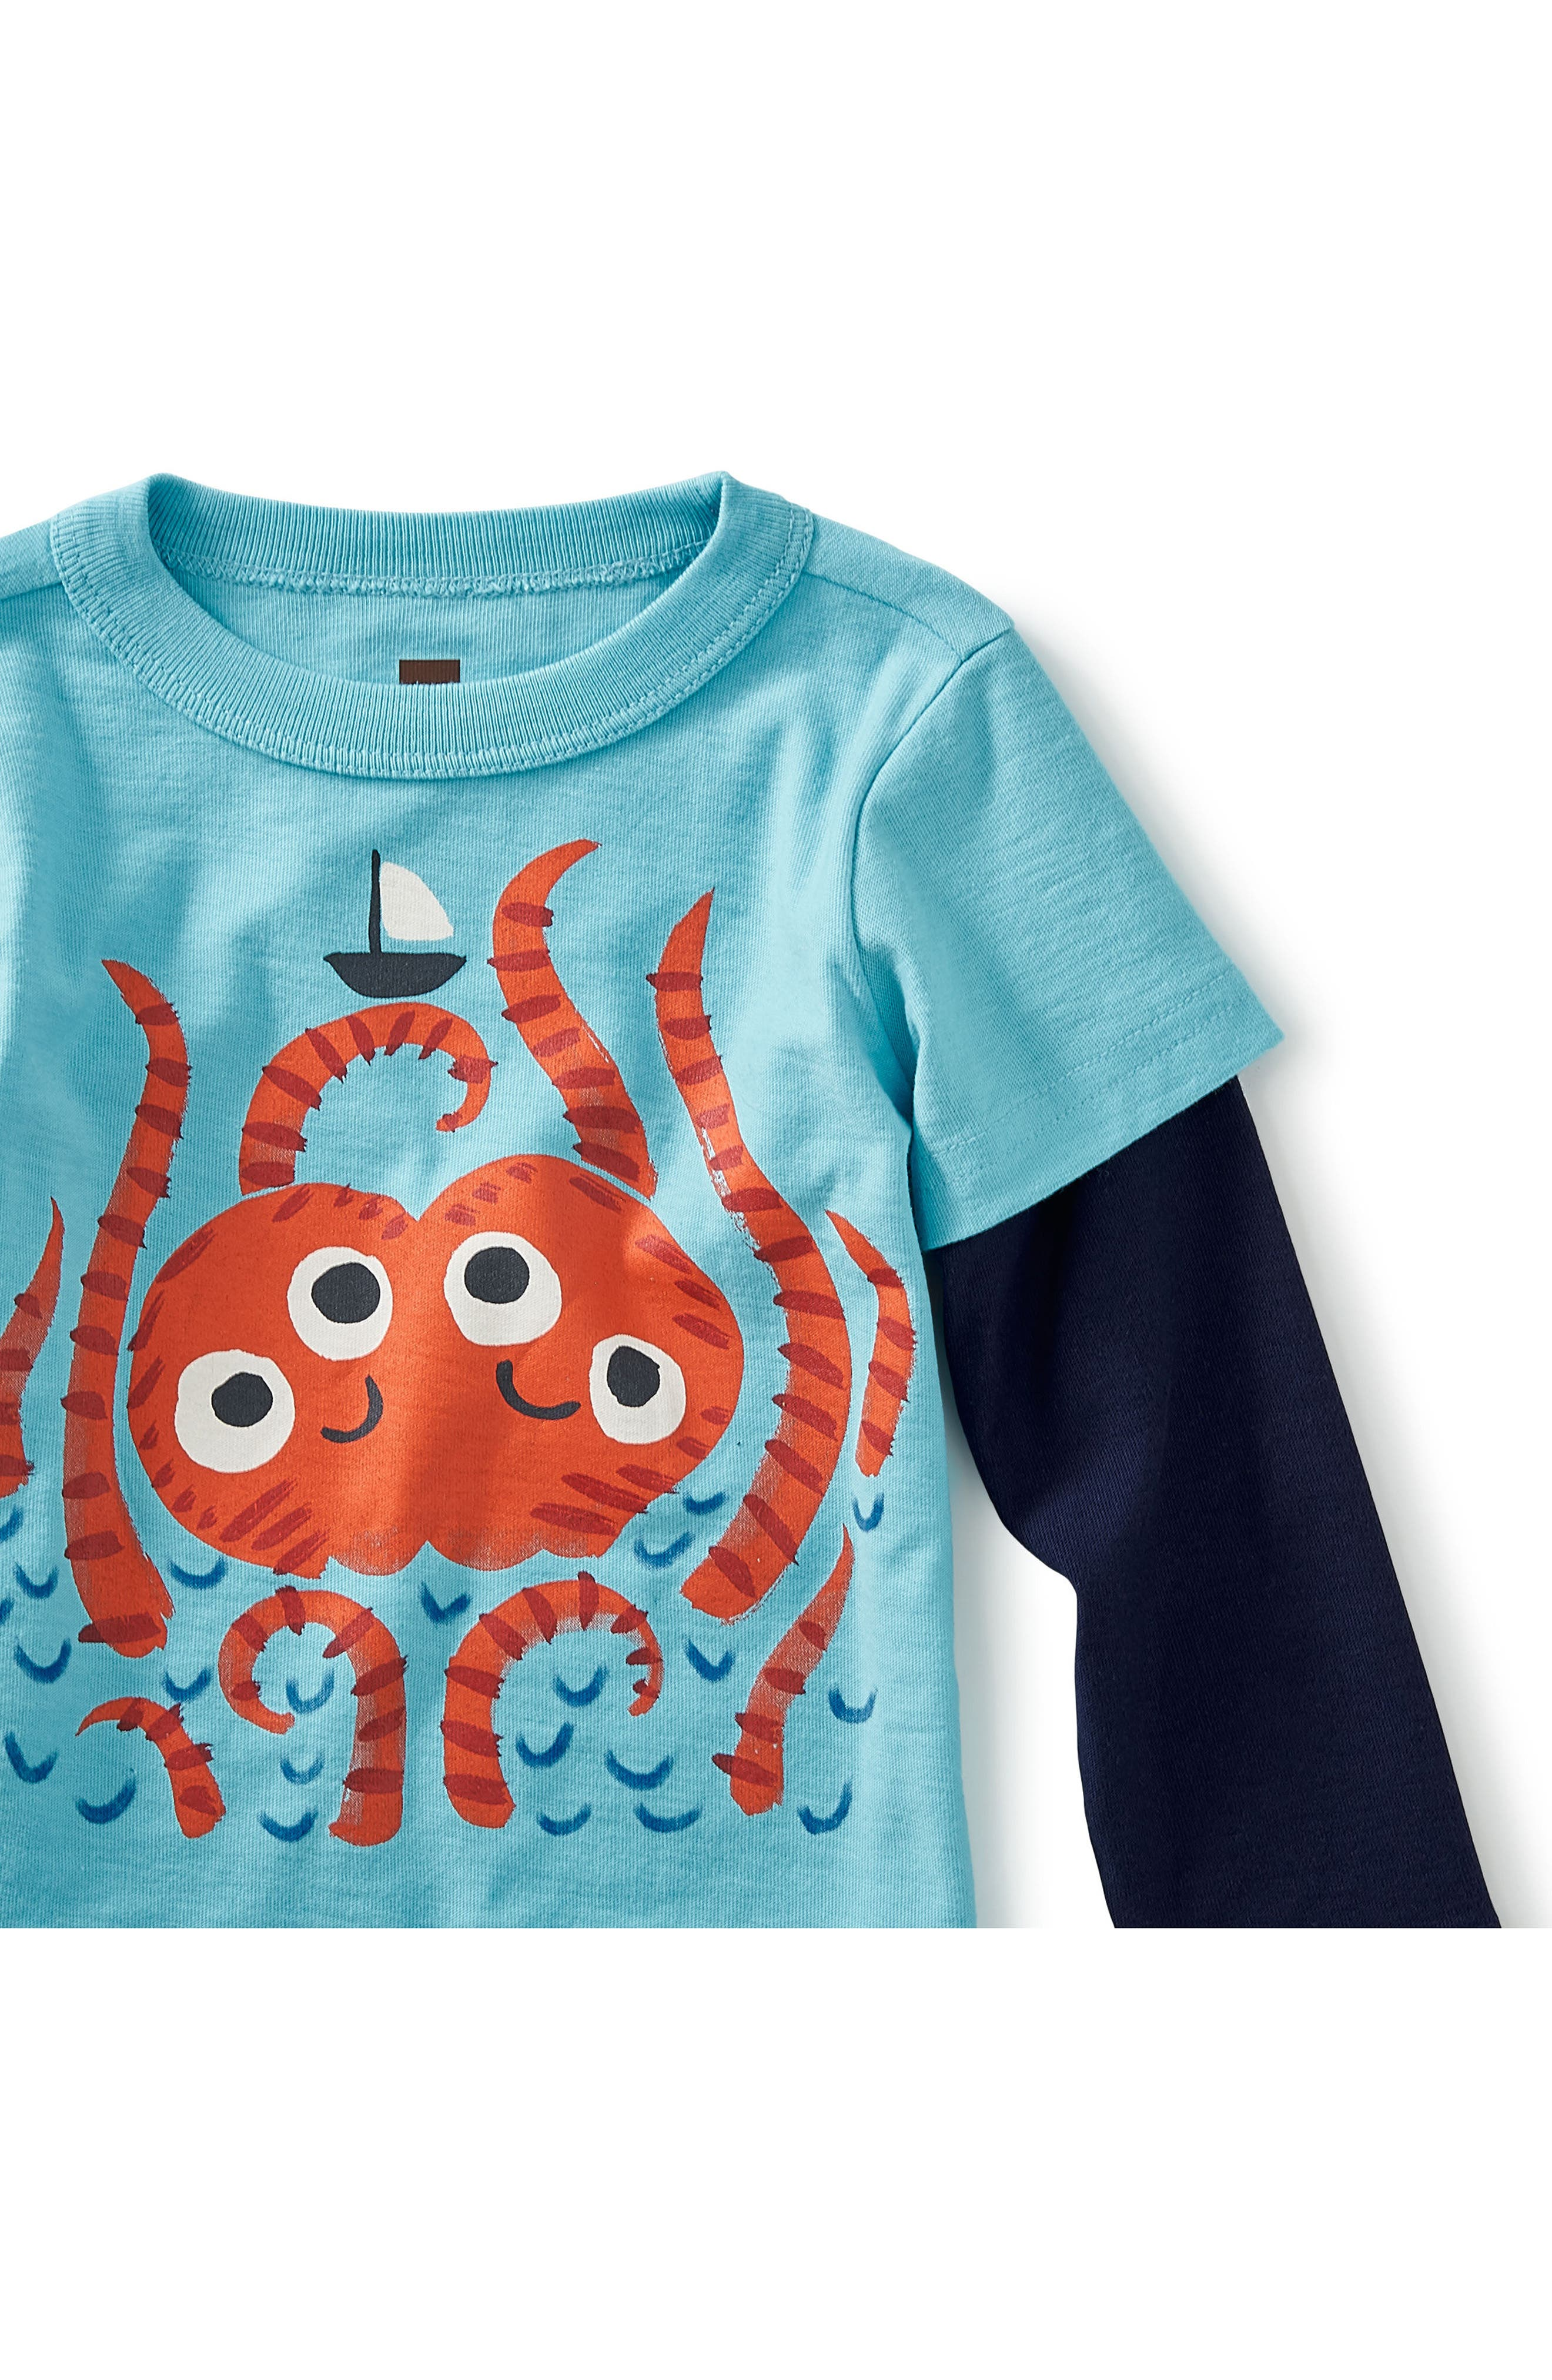 Sea Monster Graphic T-Shirt,                             Alternate thumbnail 2, color,                             400